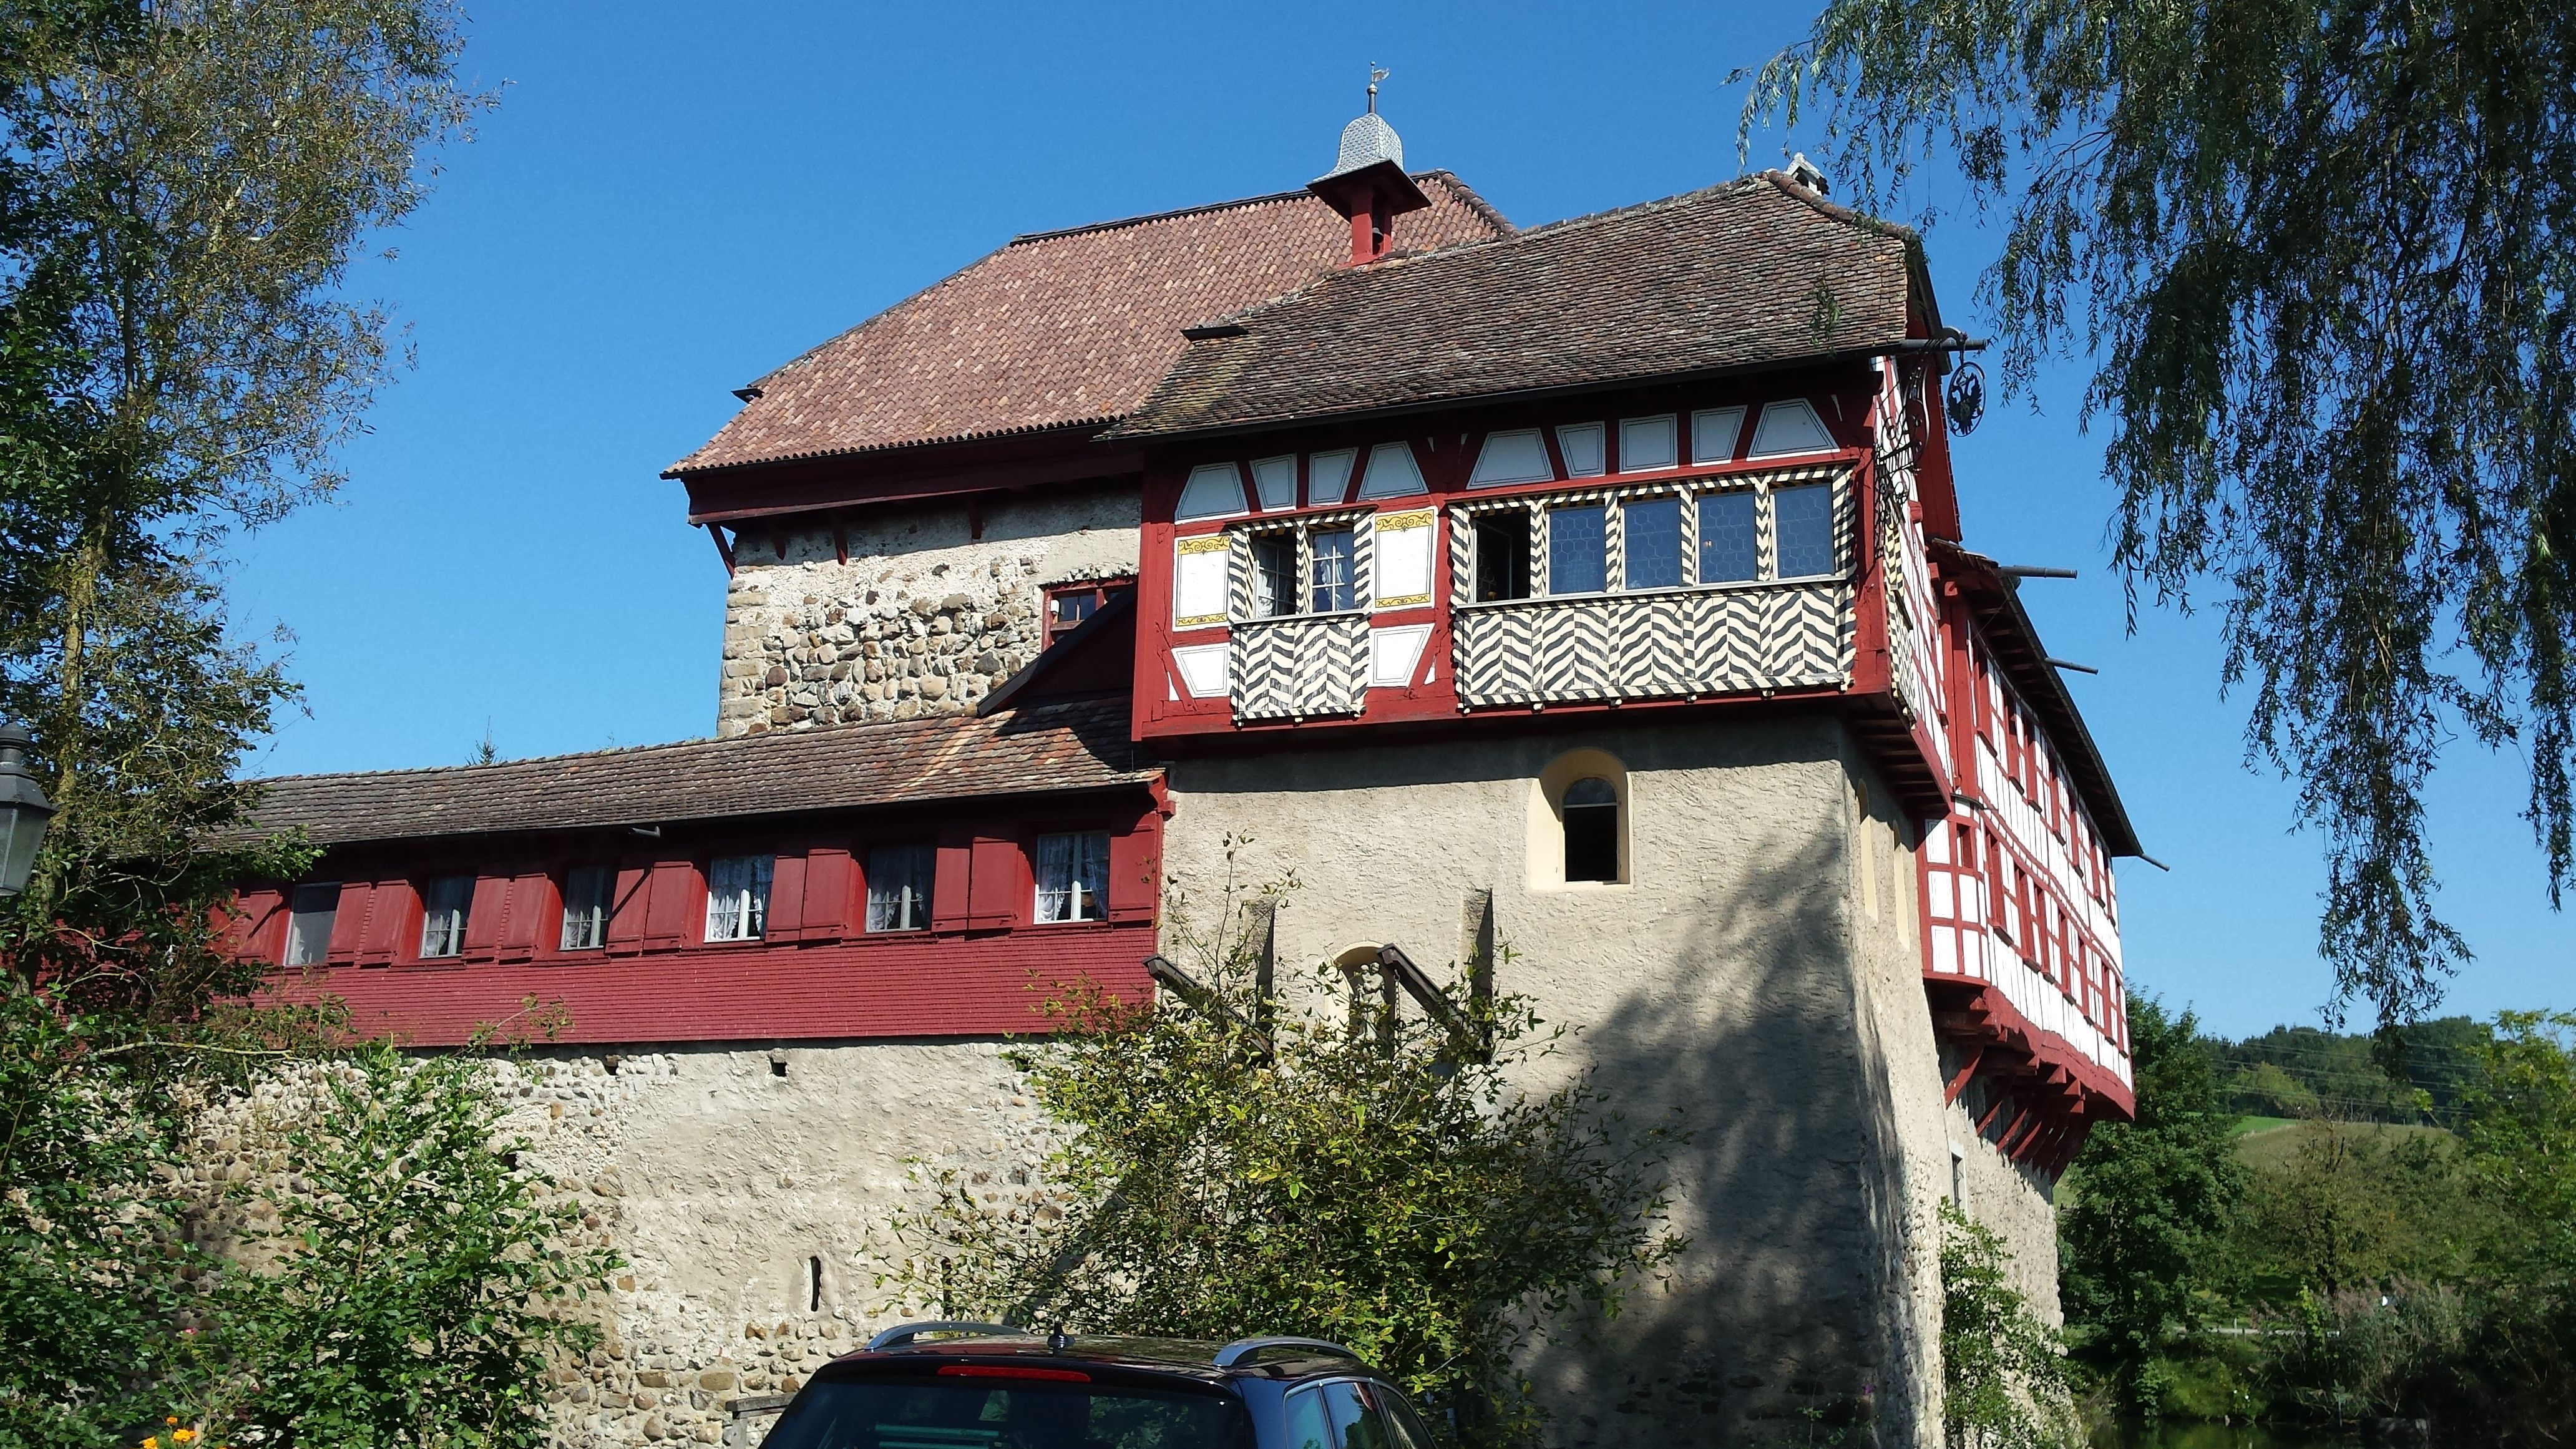 Schloss Hagenwil Kanton Thurgau Beautiful, Pictures, My home